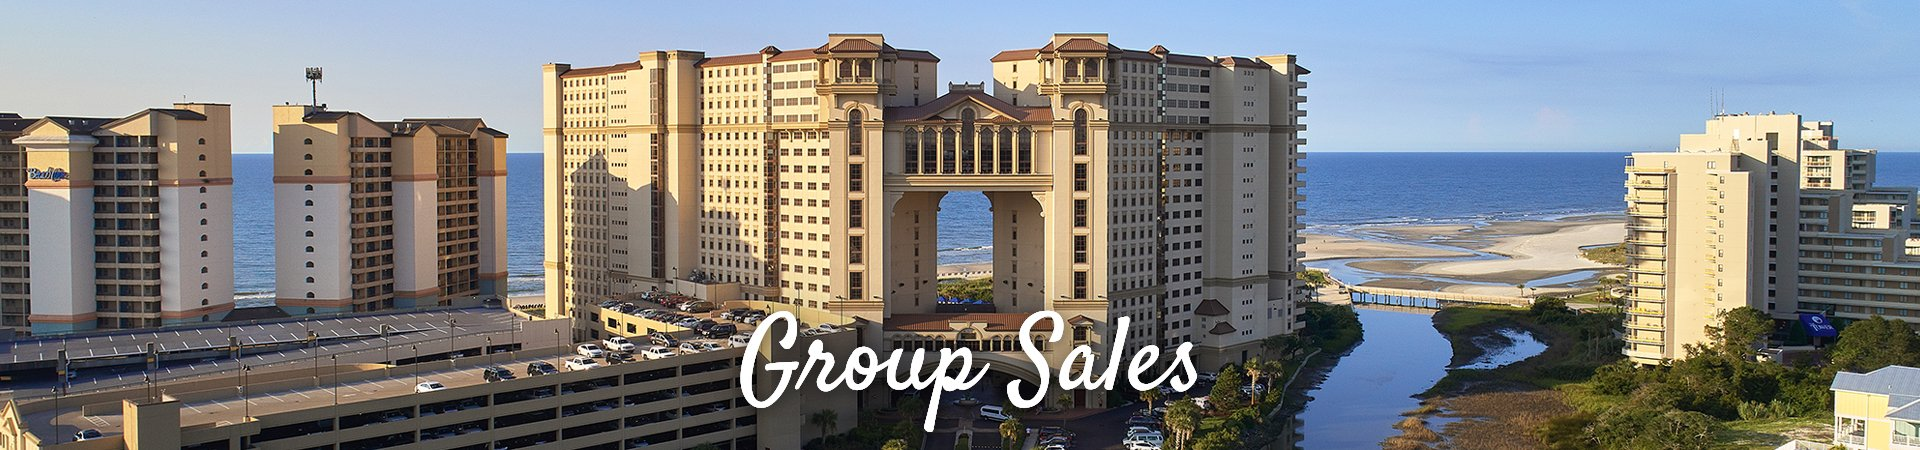 Group Sales Page Header 1920x450_F